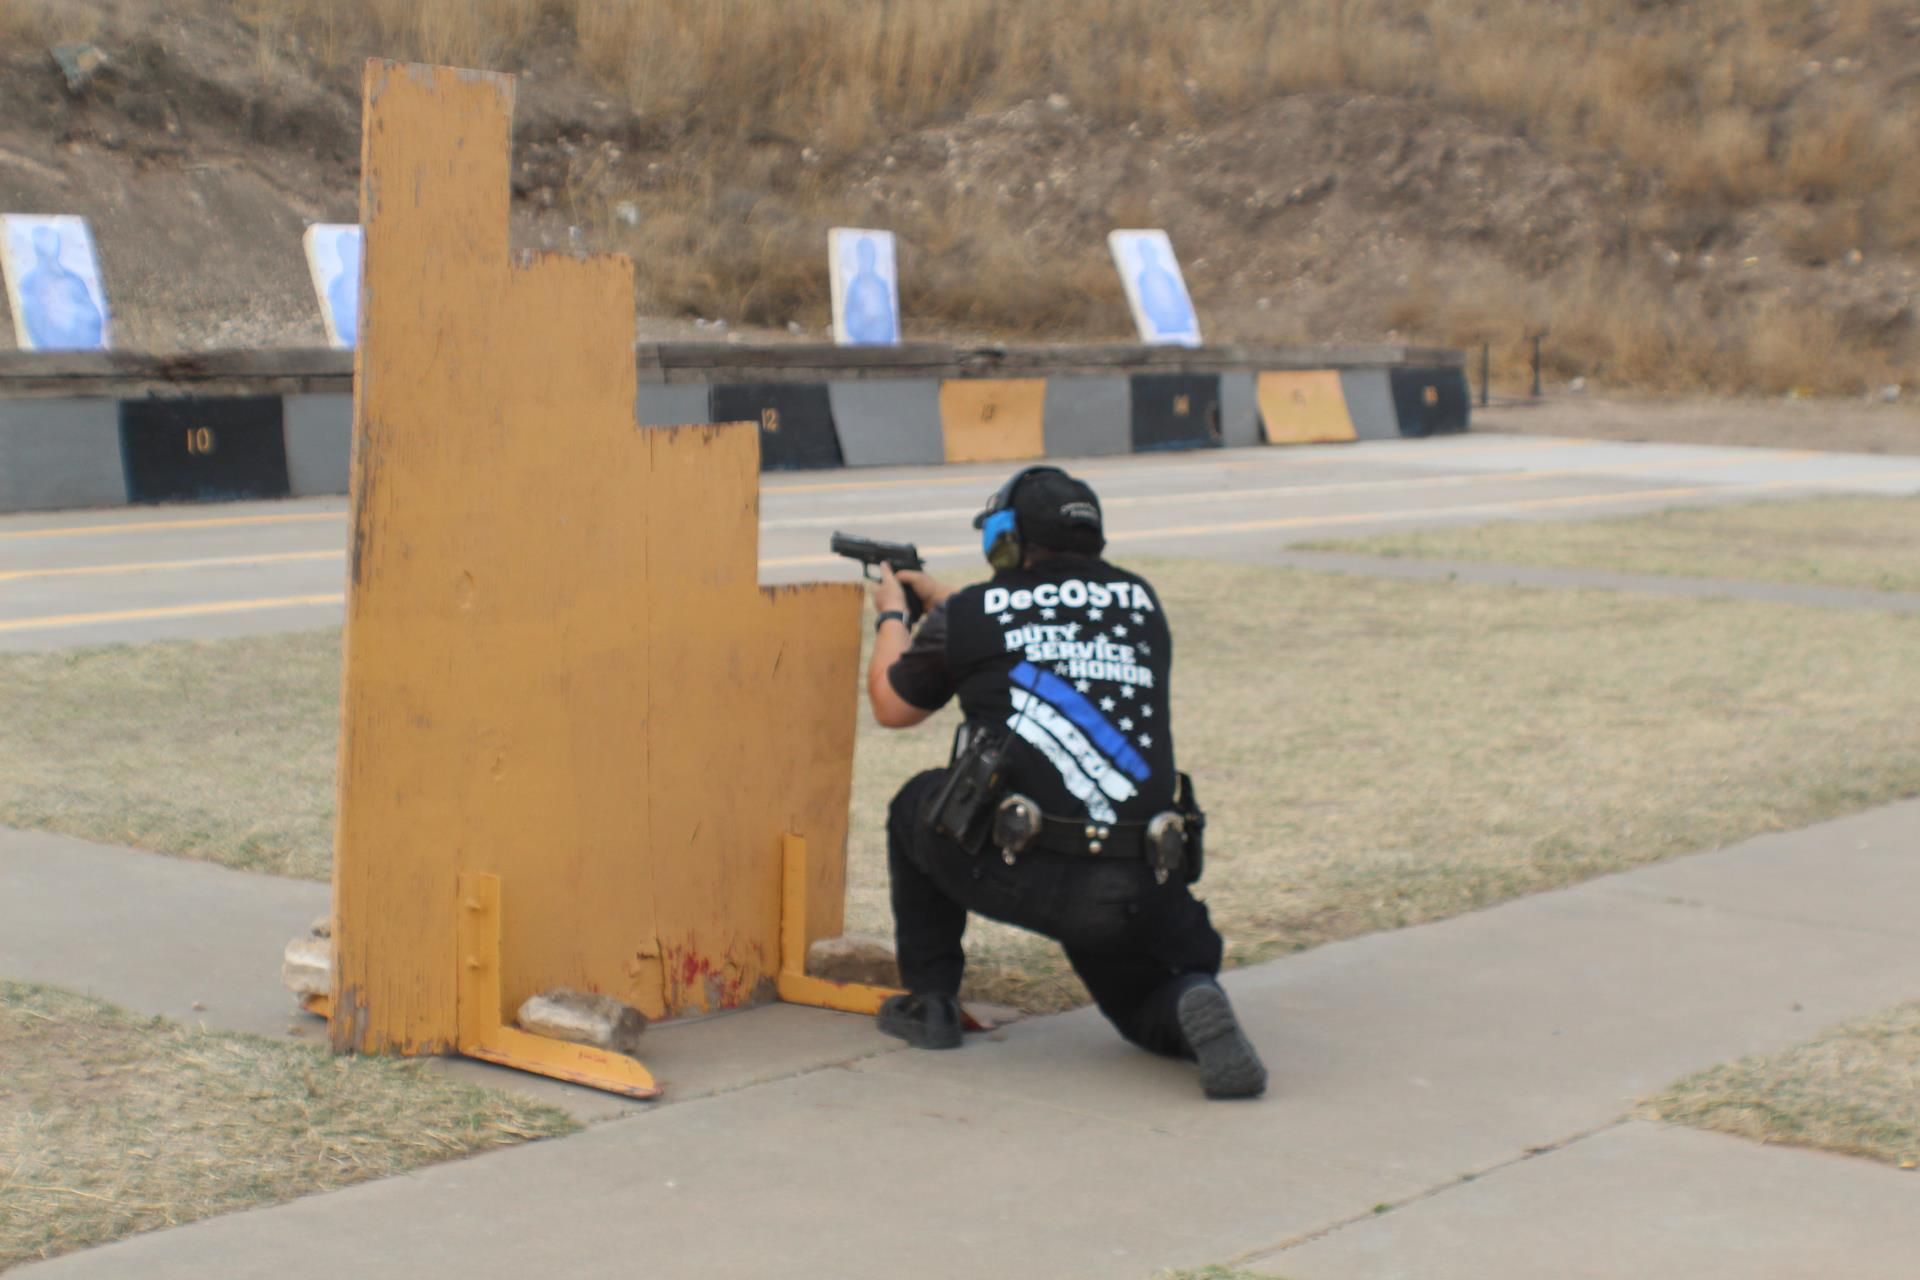 Recruit holding pistol, crouched behind a wooden barrier to aim at targets